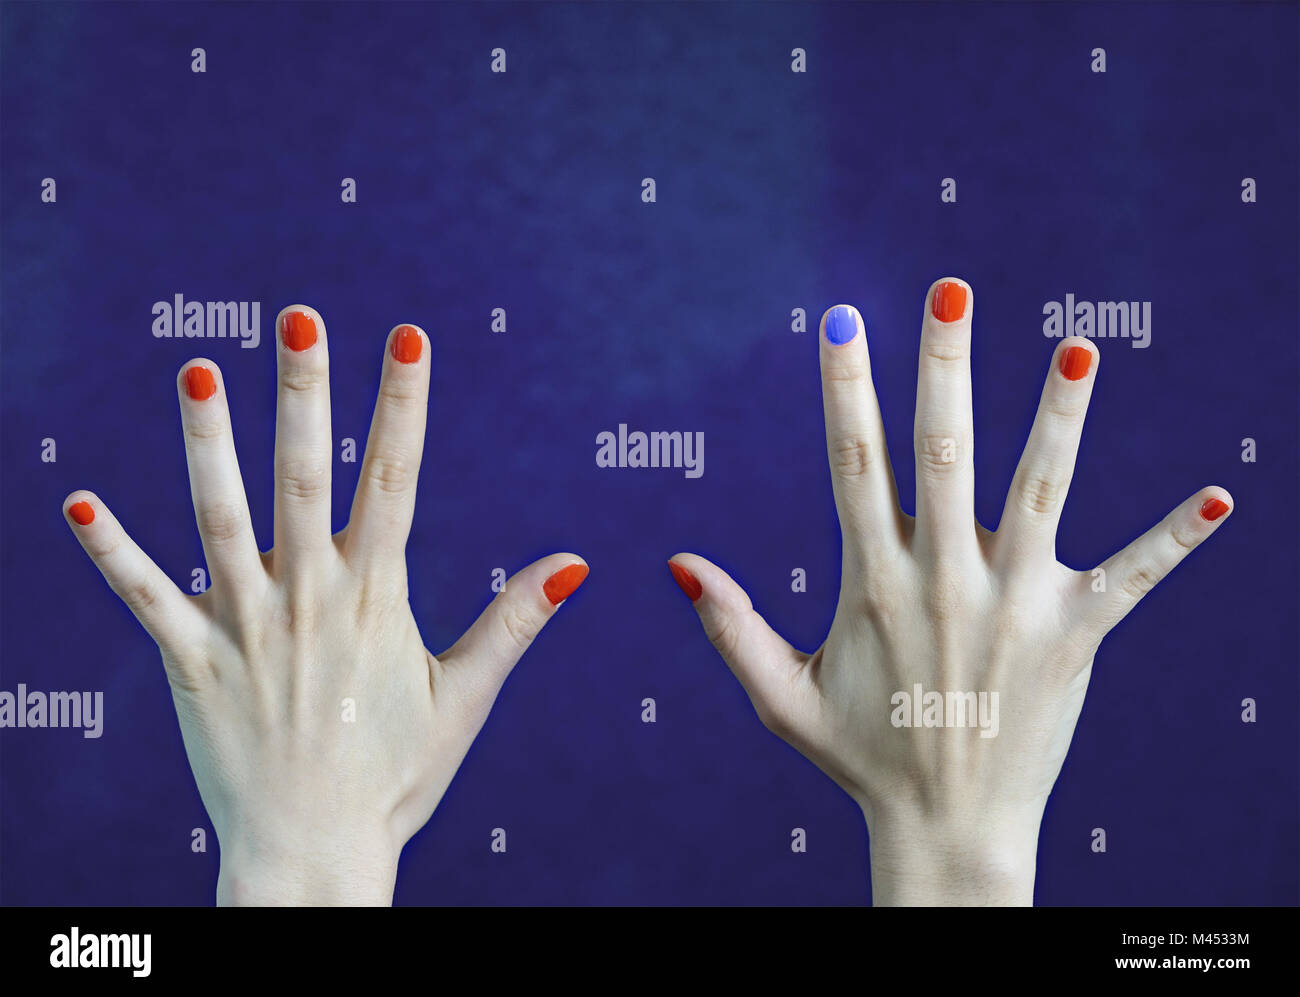 One Different Nail Color In Finger Caucasian Hands Red And Blue Painted Fingernails Stand Out From The Crowd Originality Creativity Concept